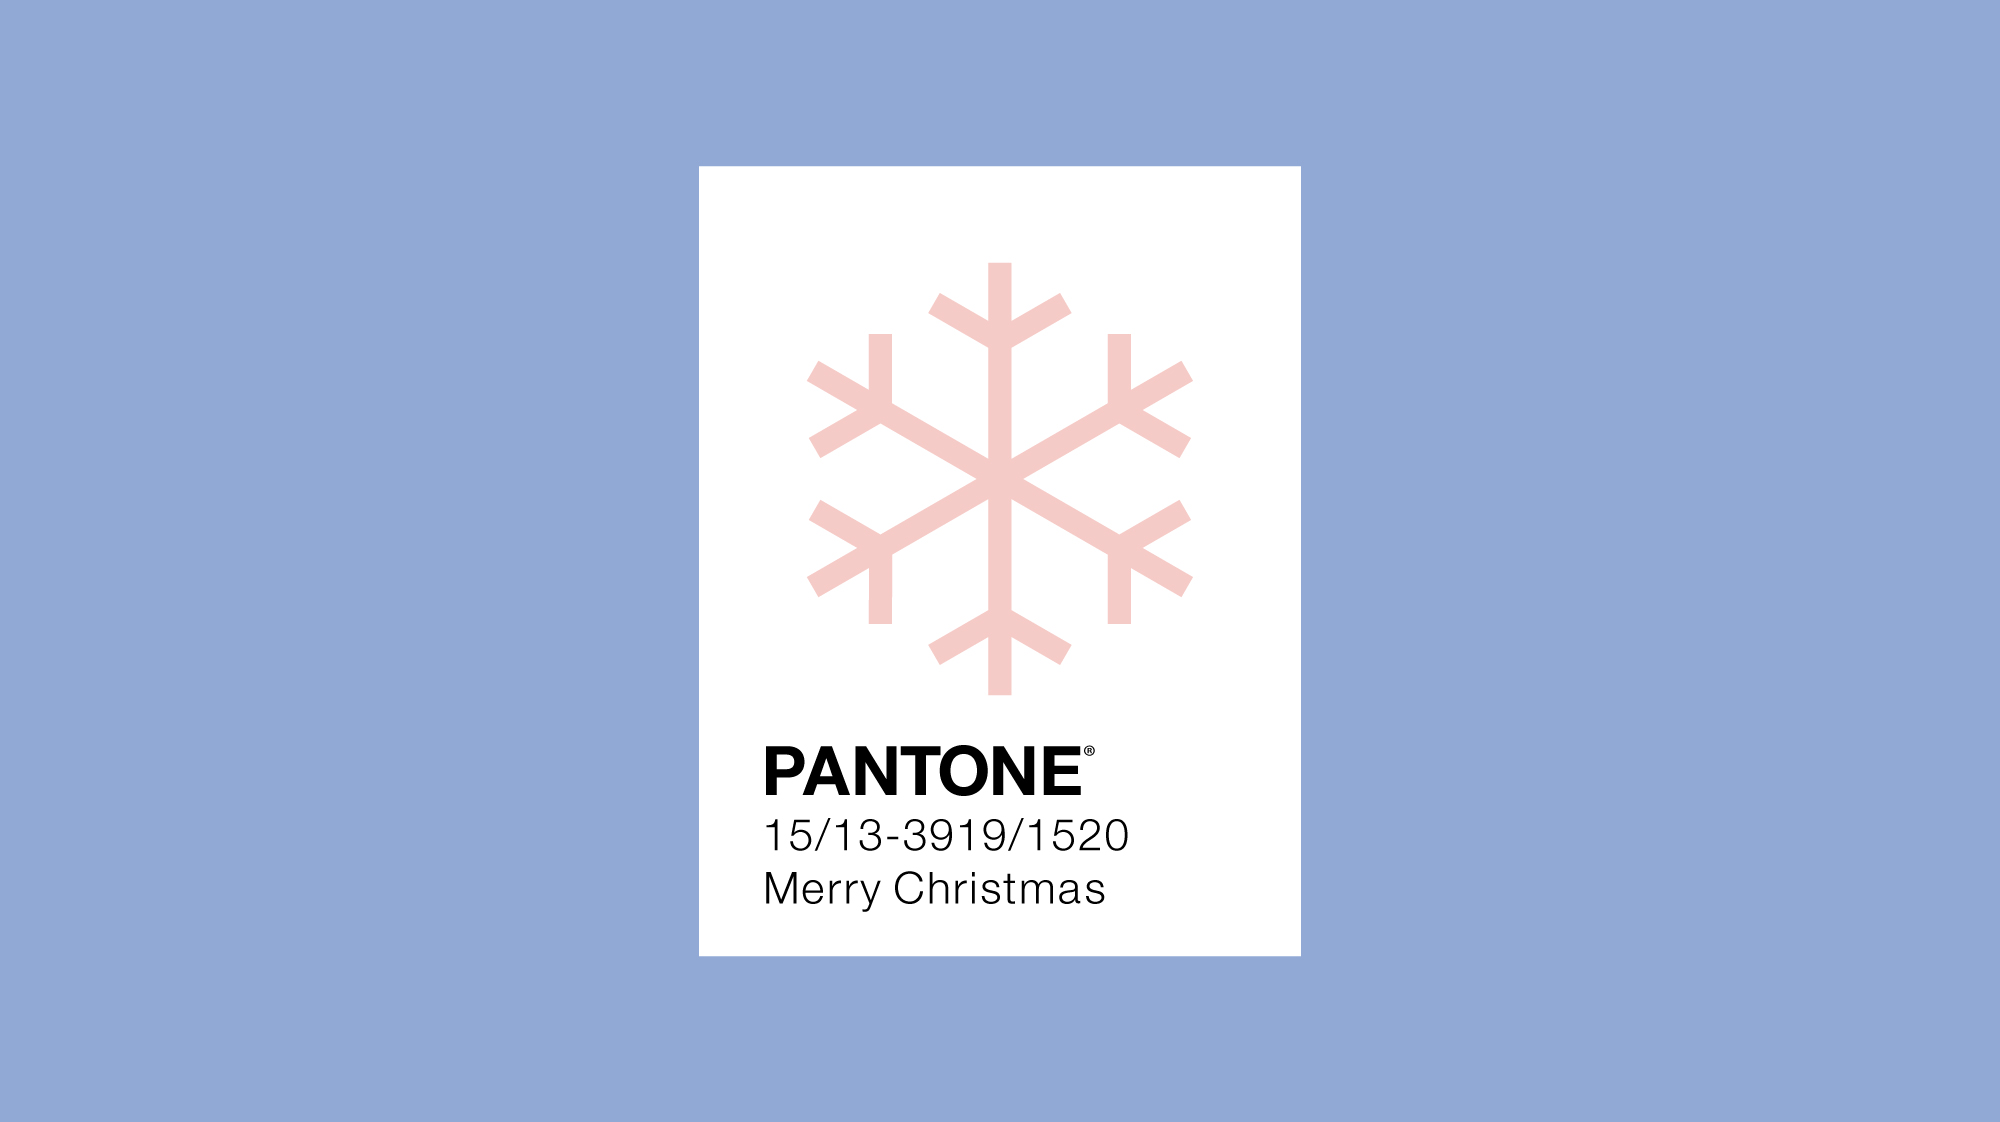 Pantone colour of the year 2016 minimal design with snowflake